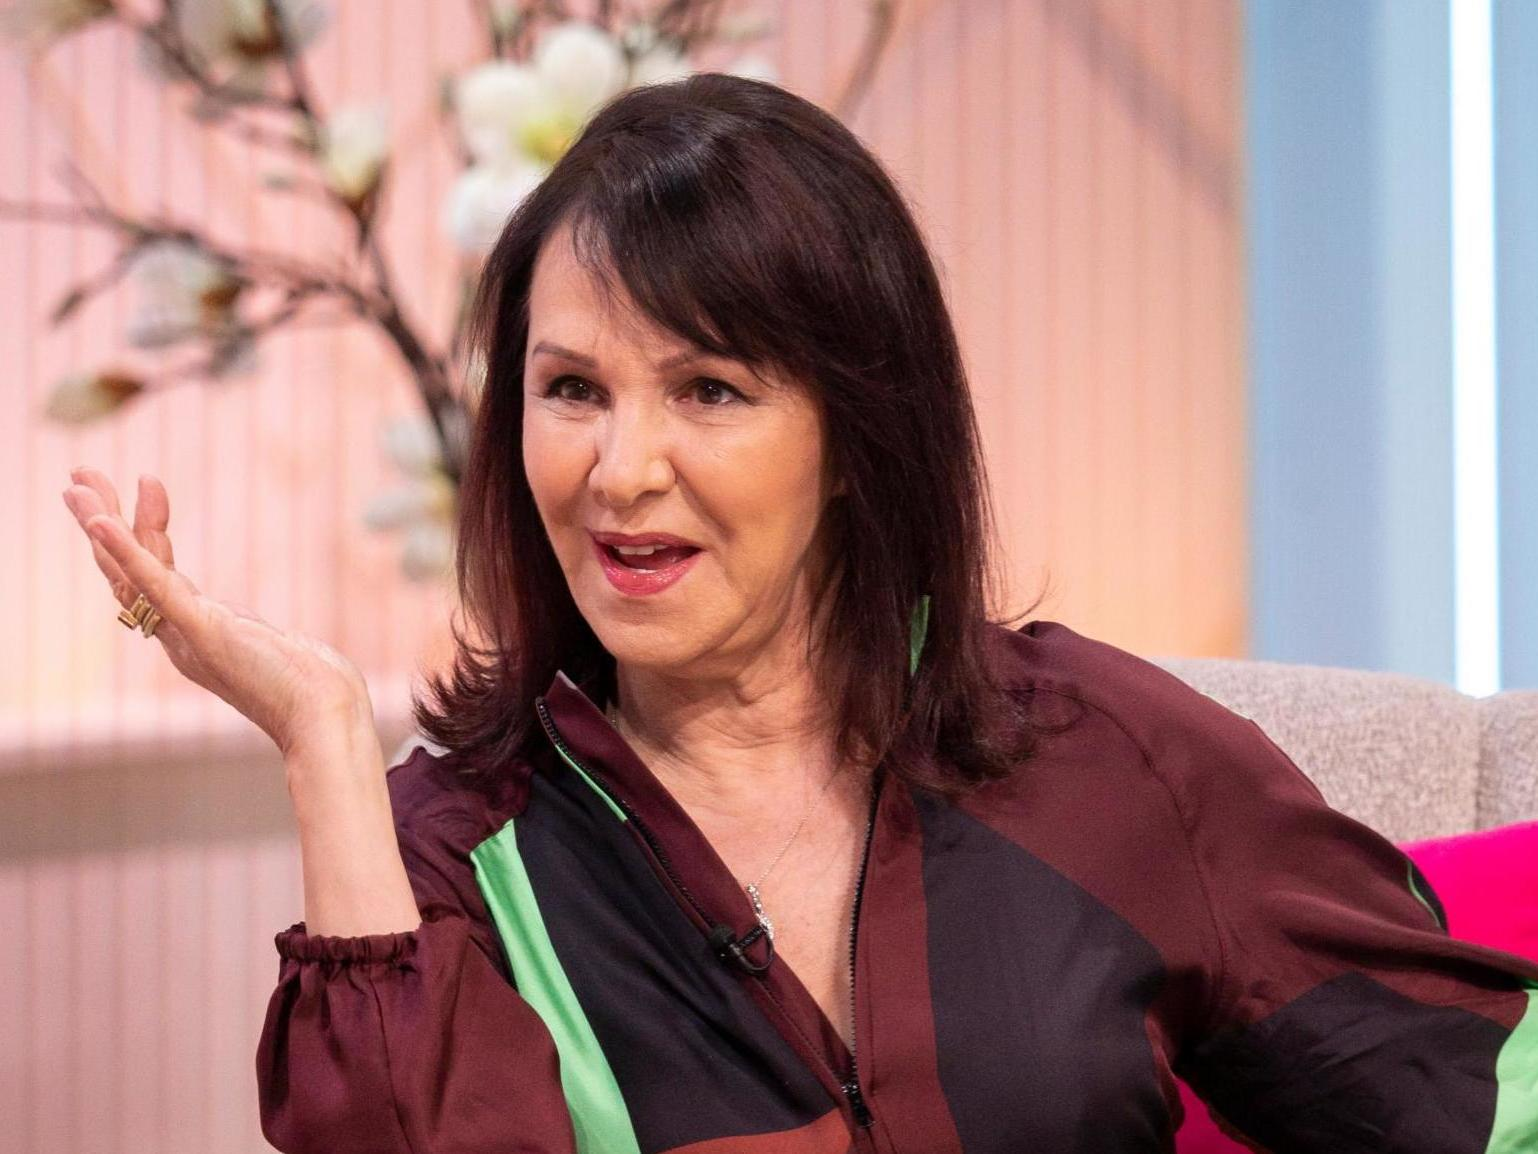 Arlene Phillips says Strictly will need to 'slim down' to work with social distancing guidelines